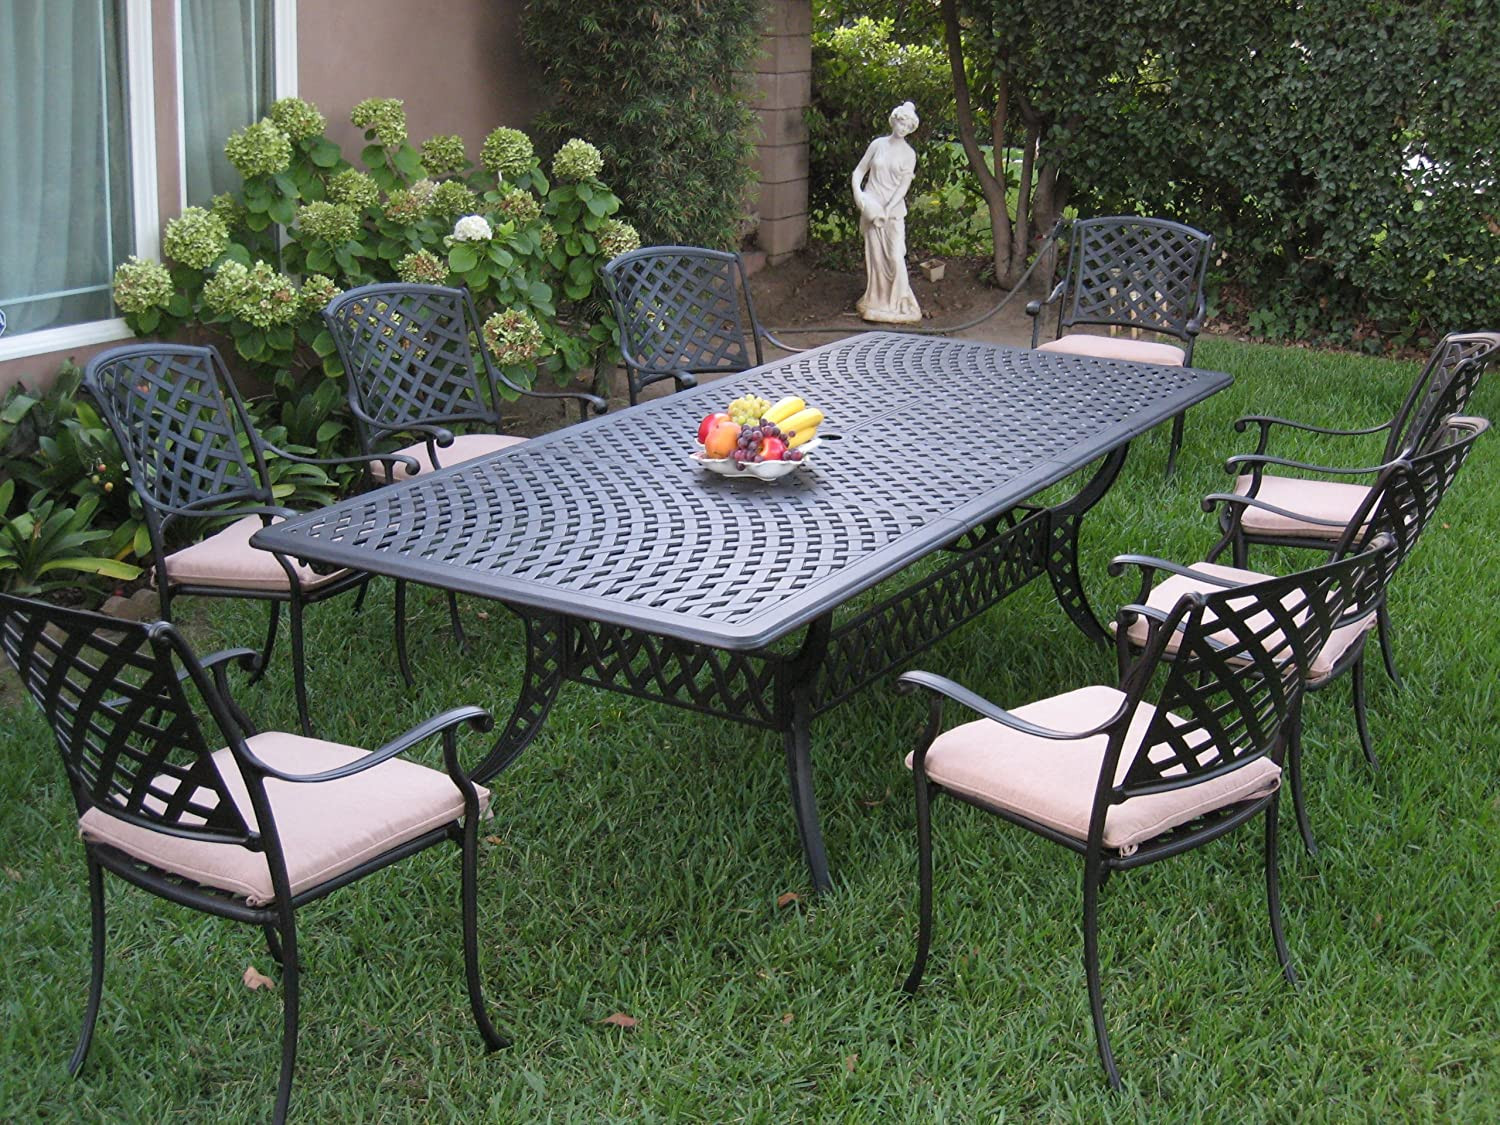 Best for Expansion Leaves: CBM Patio Kawaii Collection Dining Table Set.